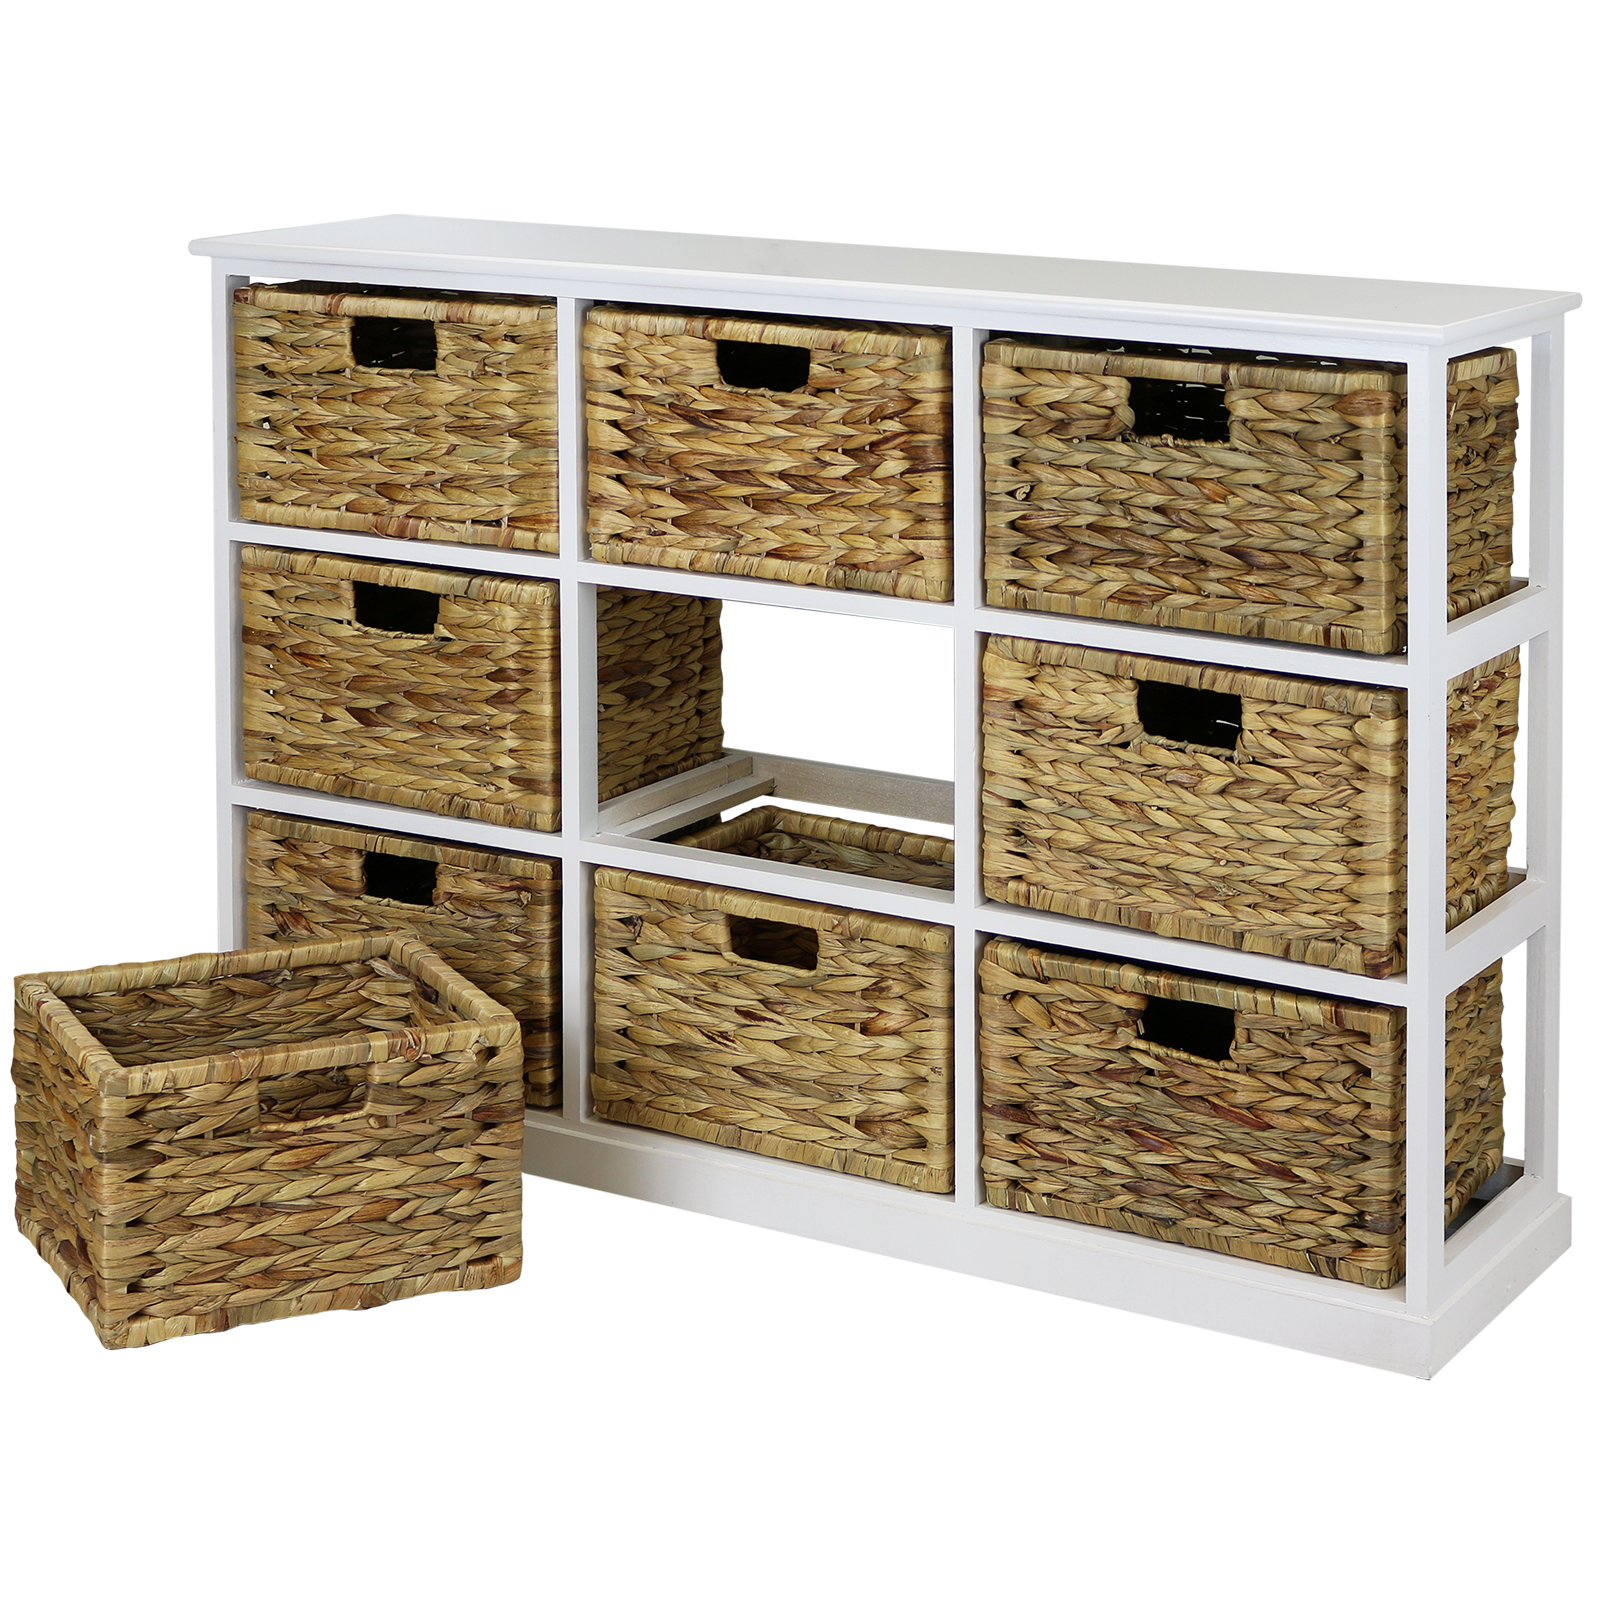 Basket Storage With Drawers Cabinets ~ Hartleys white wood home storage unit wicker drawer